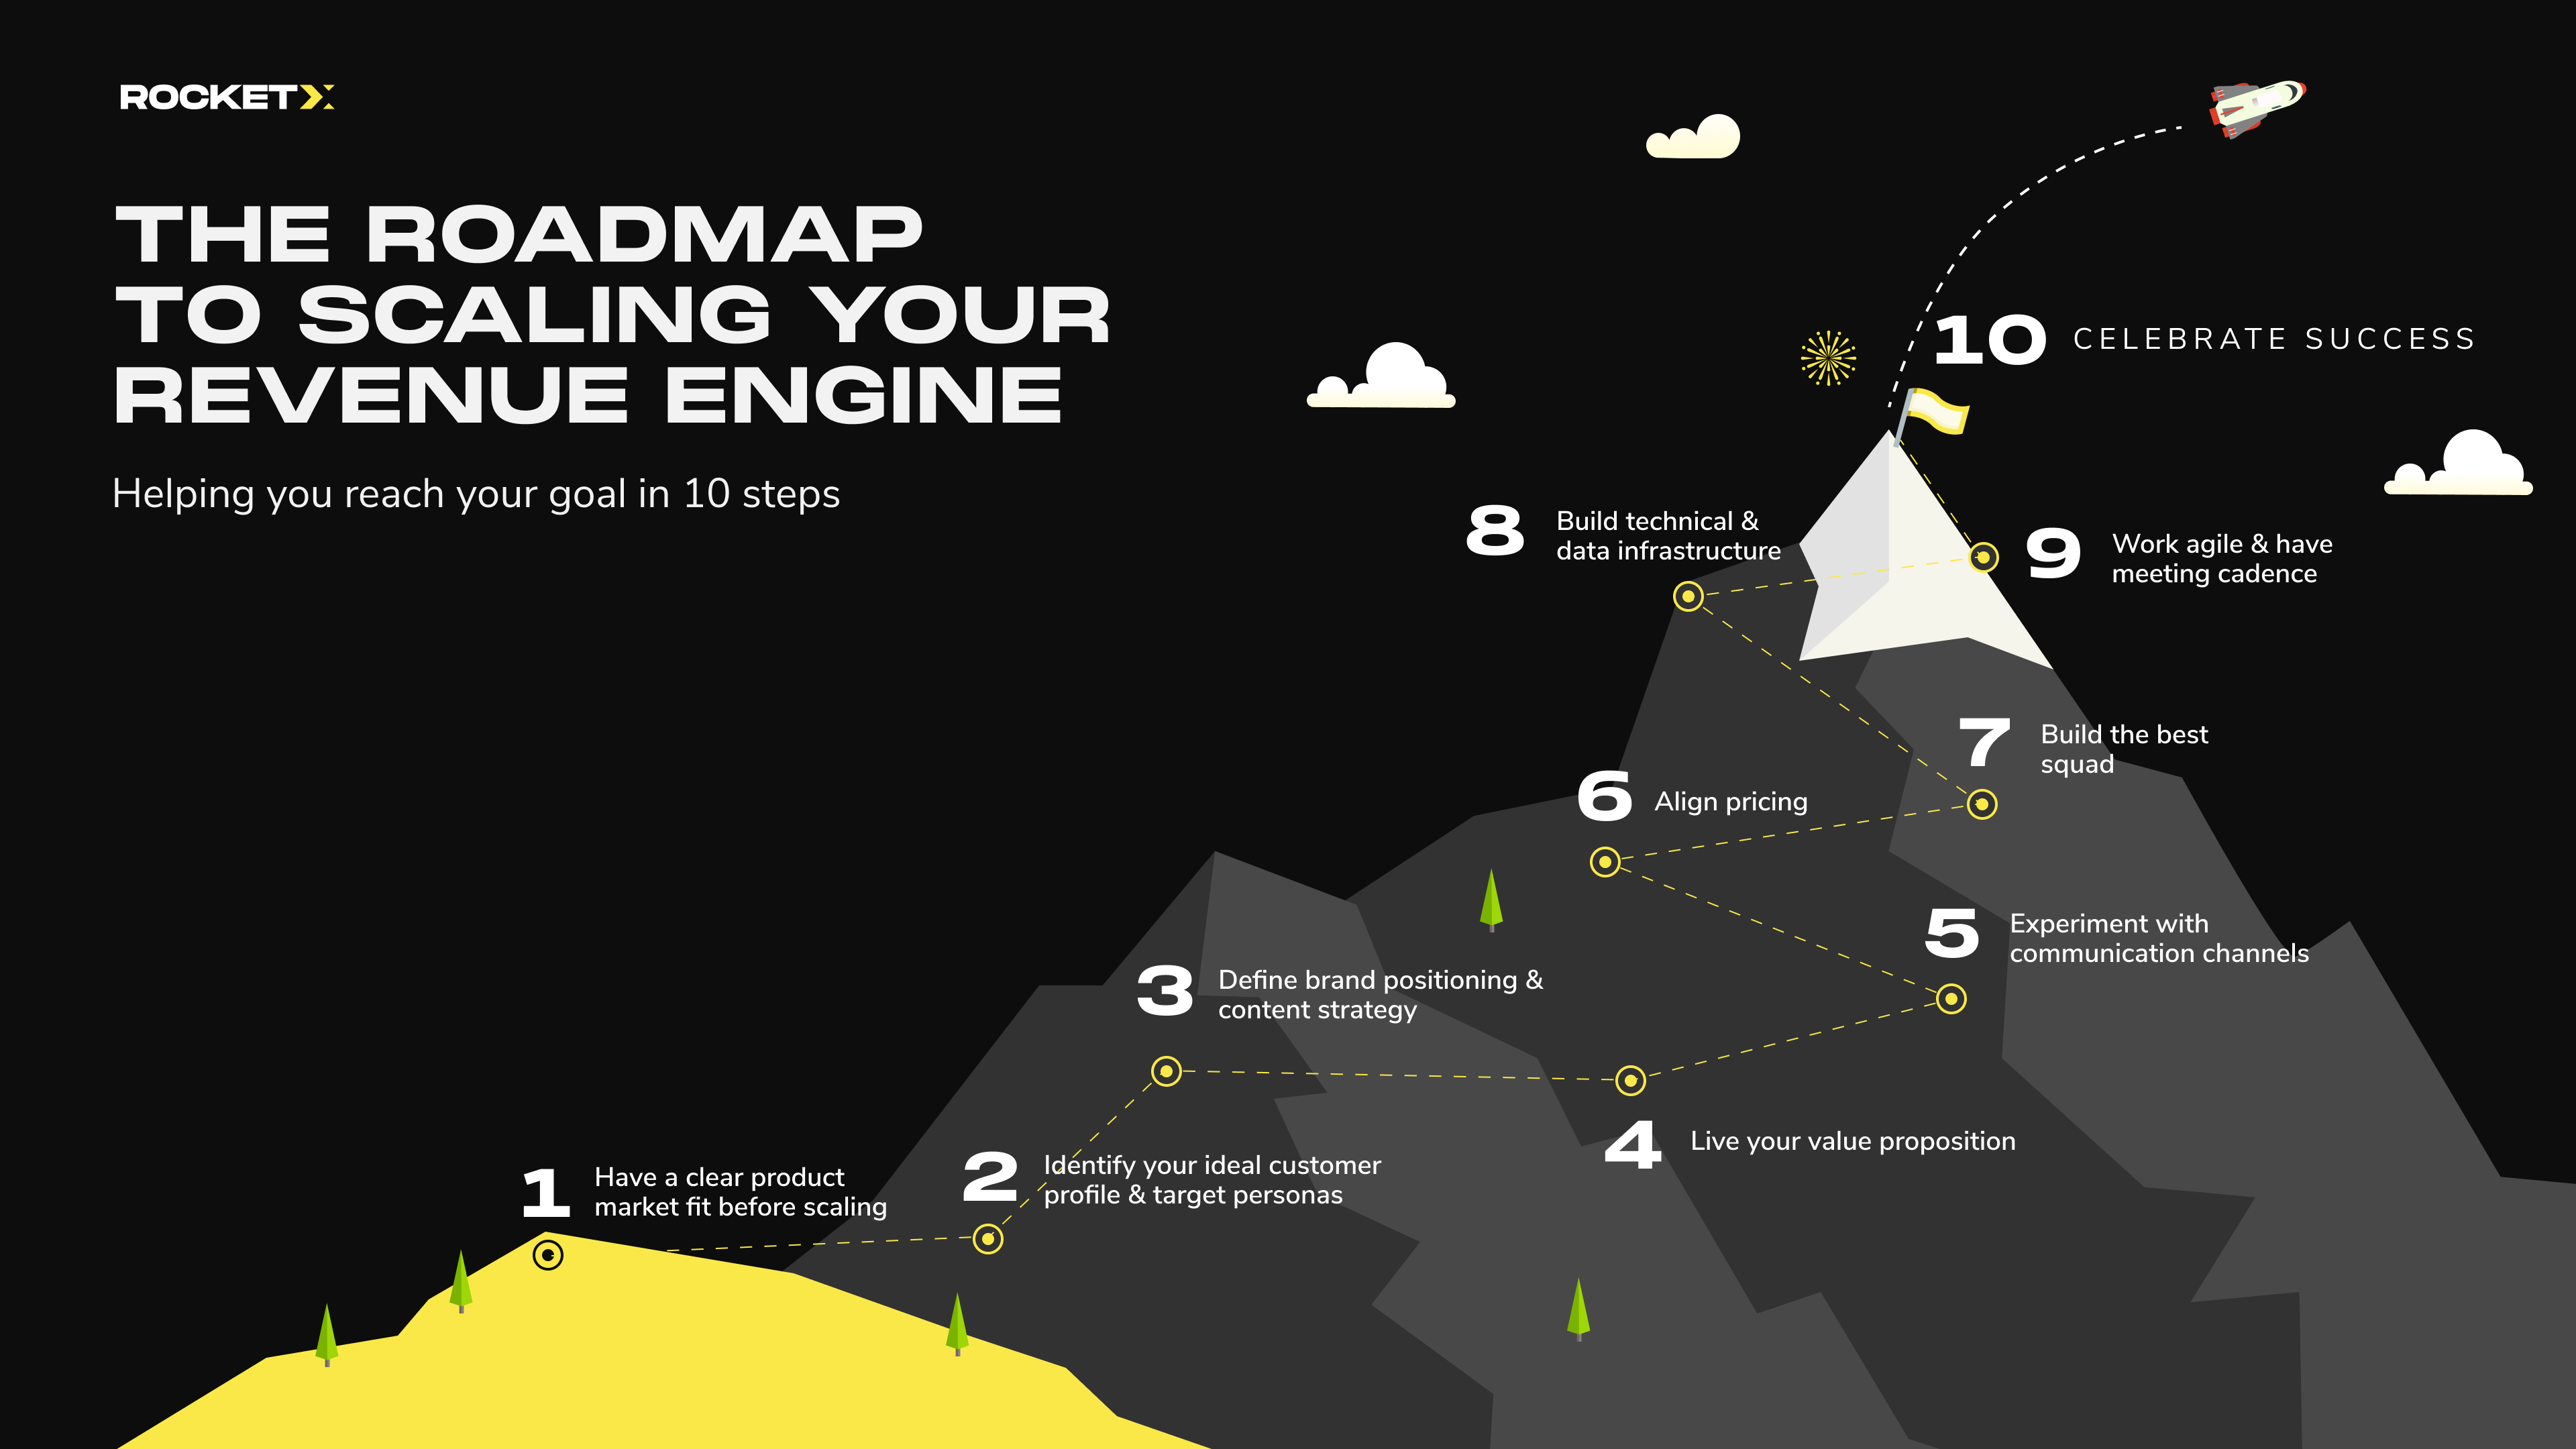 Roadmap to scaling your revenue engine